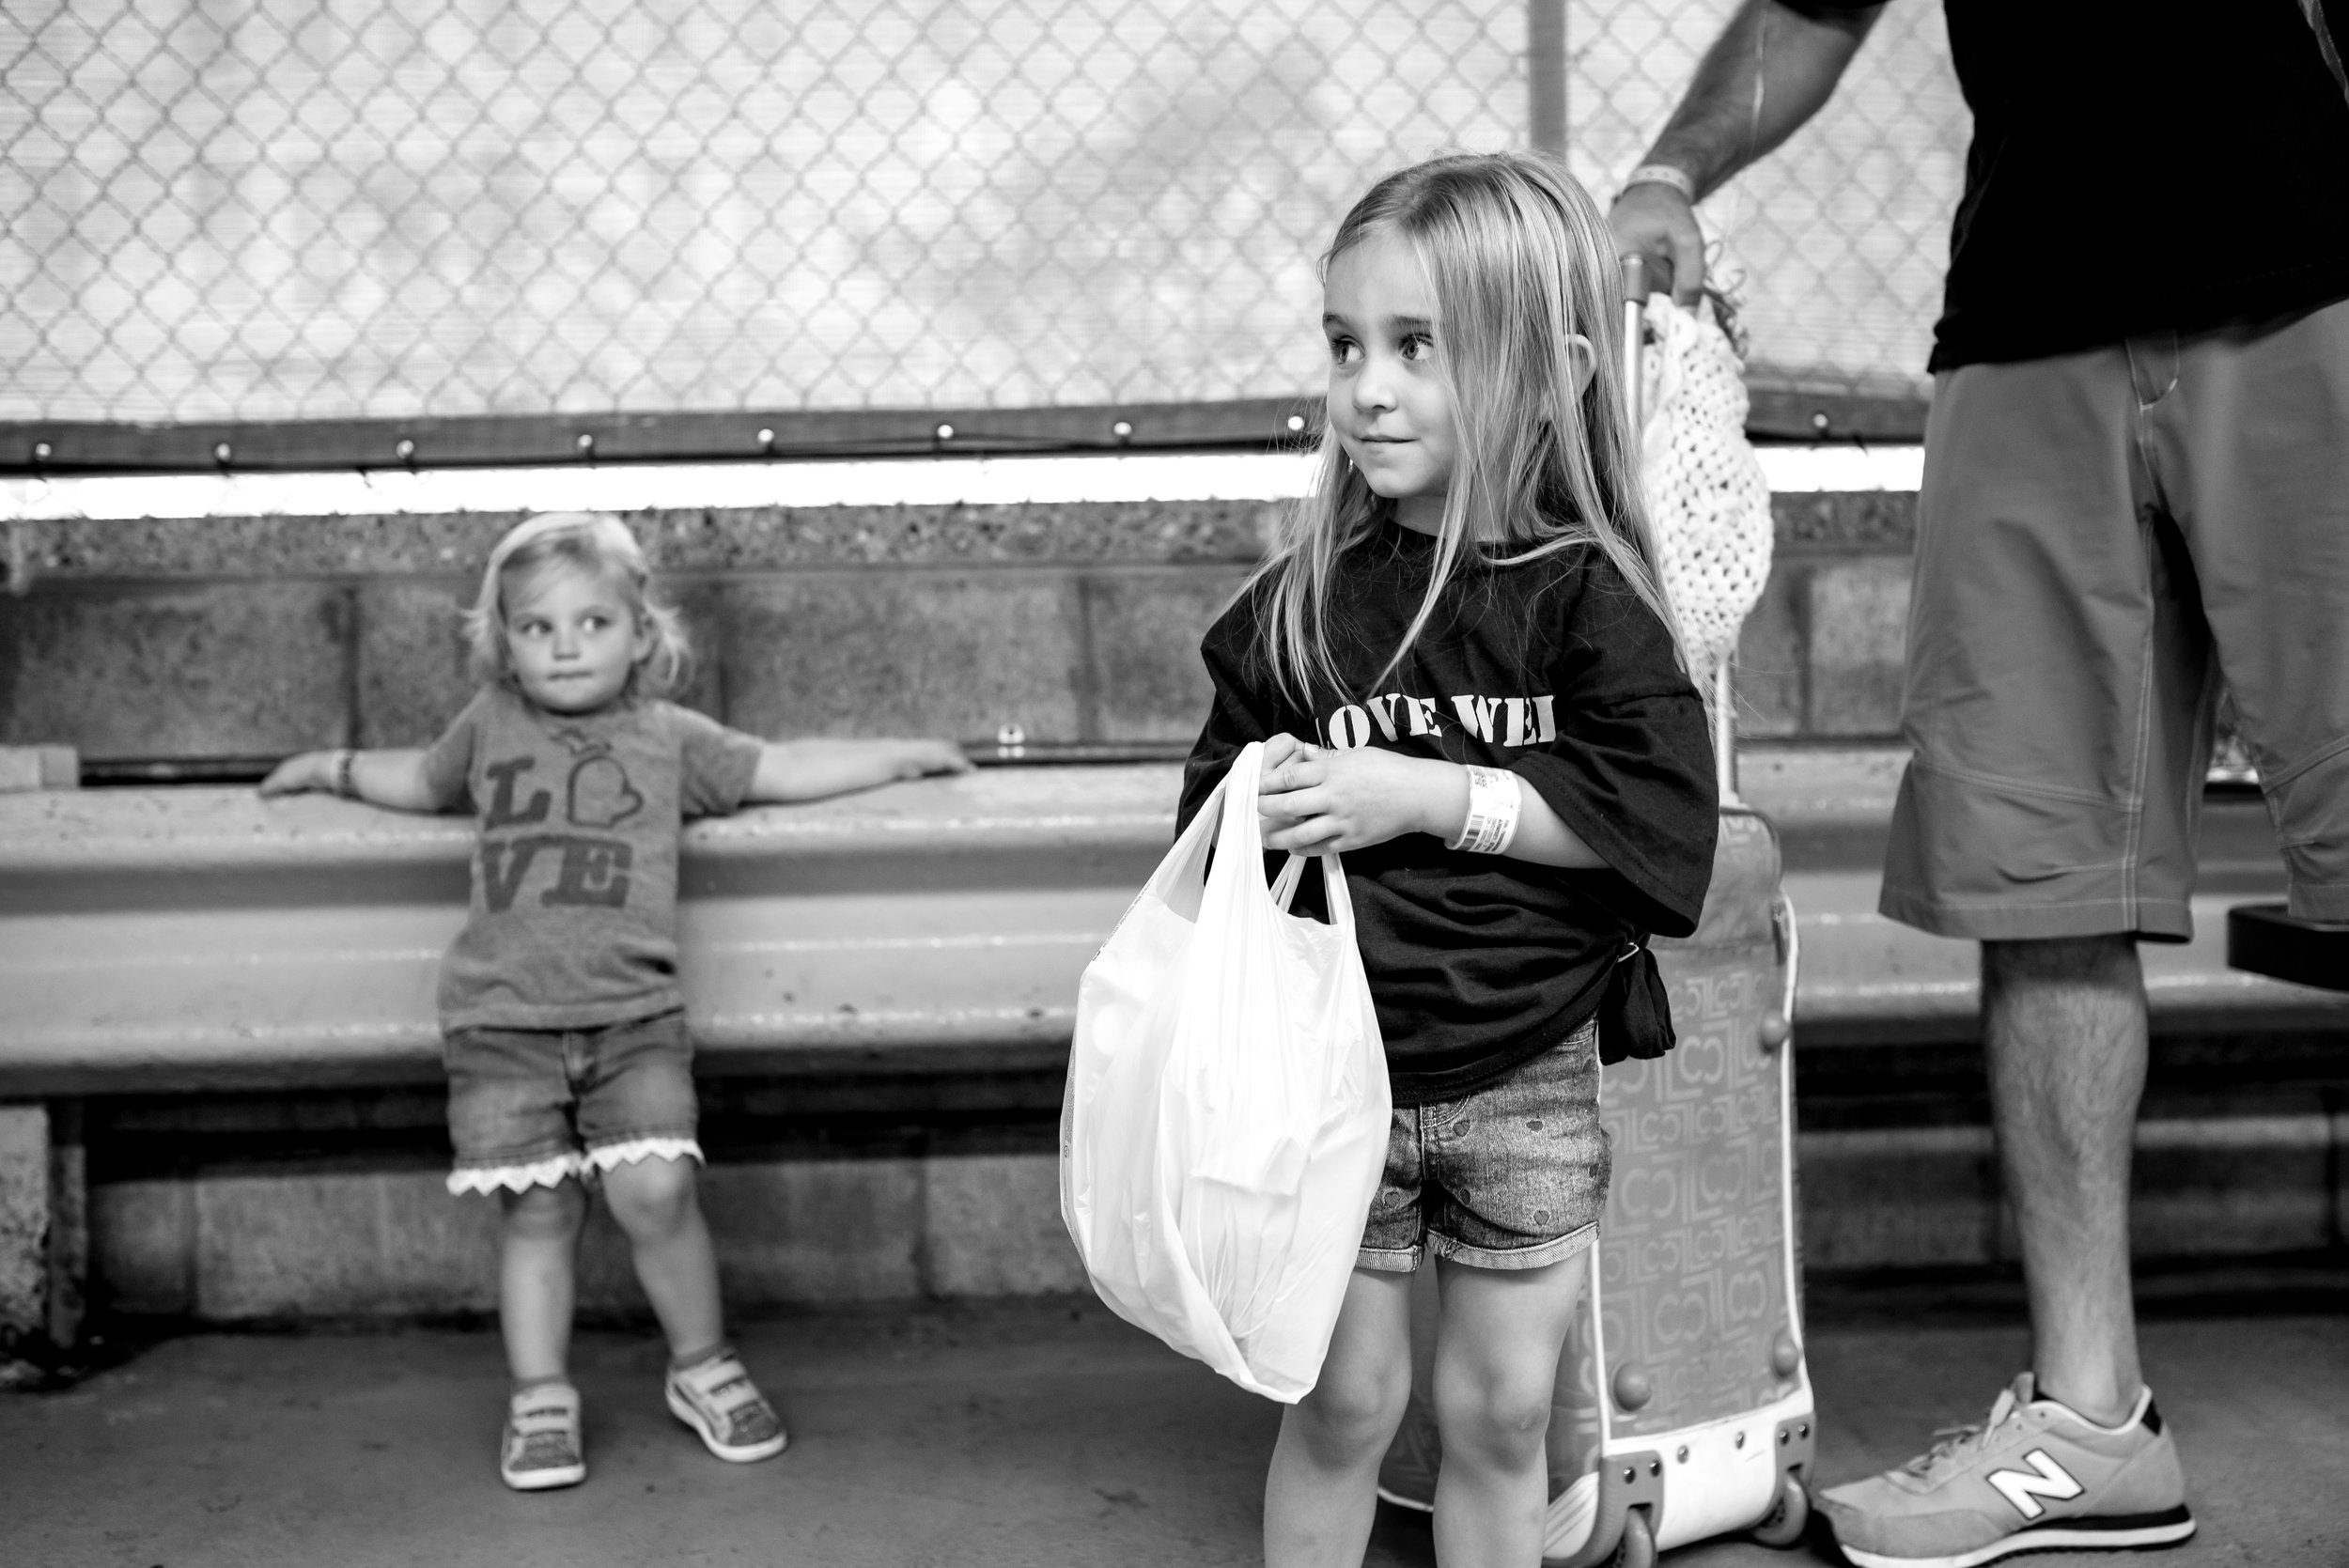 Little sister looks at big sister while family waits for car